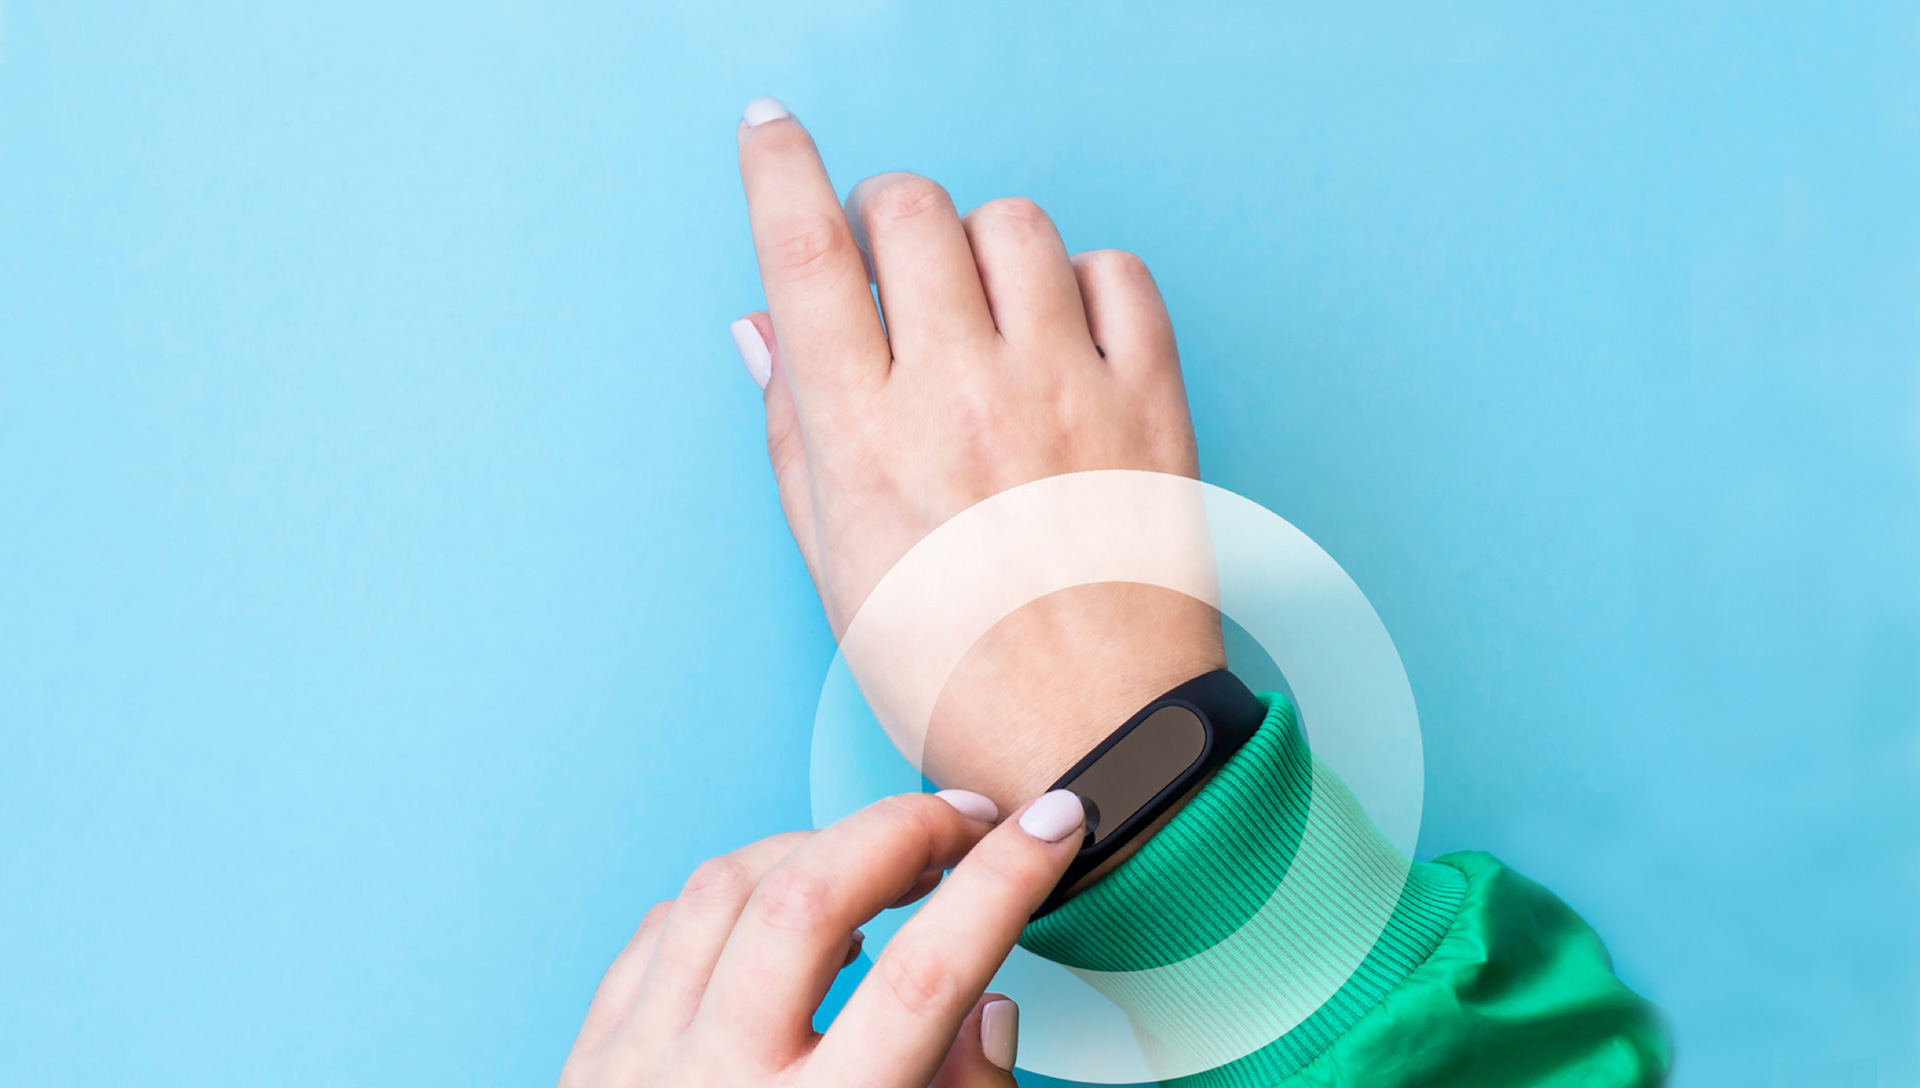 a wearable health device on a persons wrist